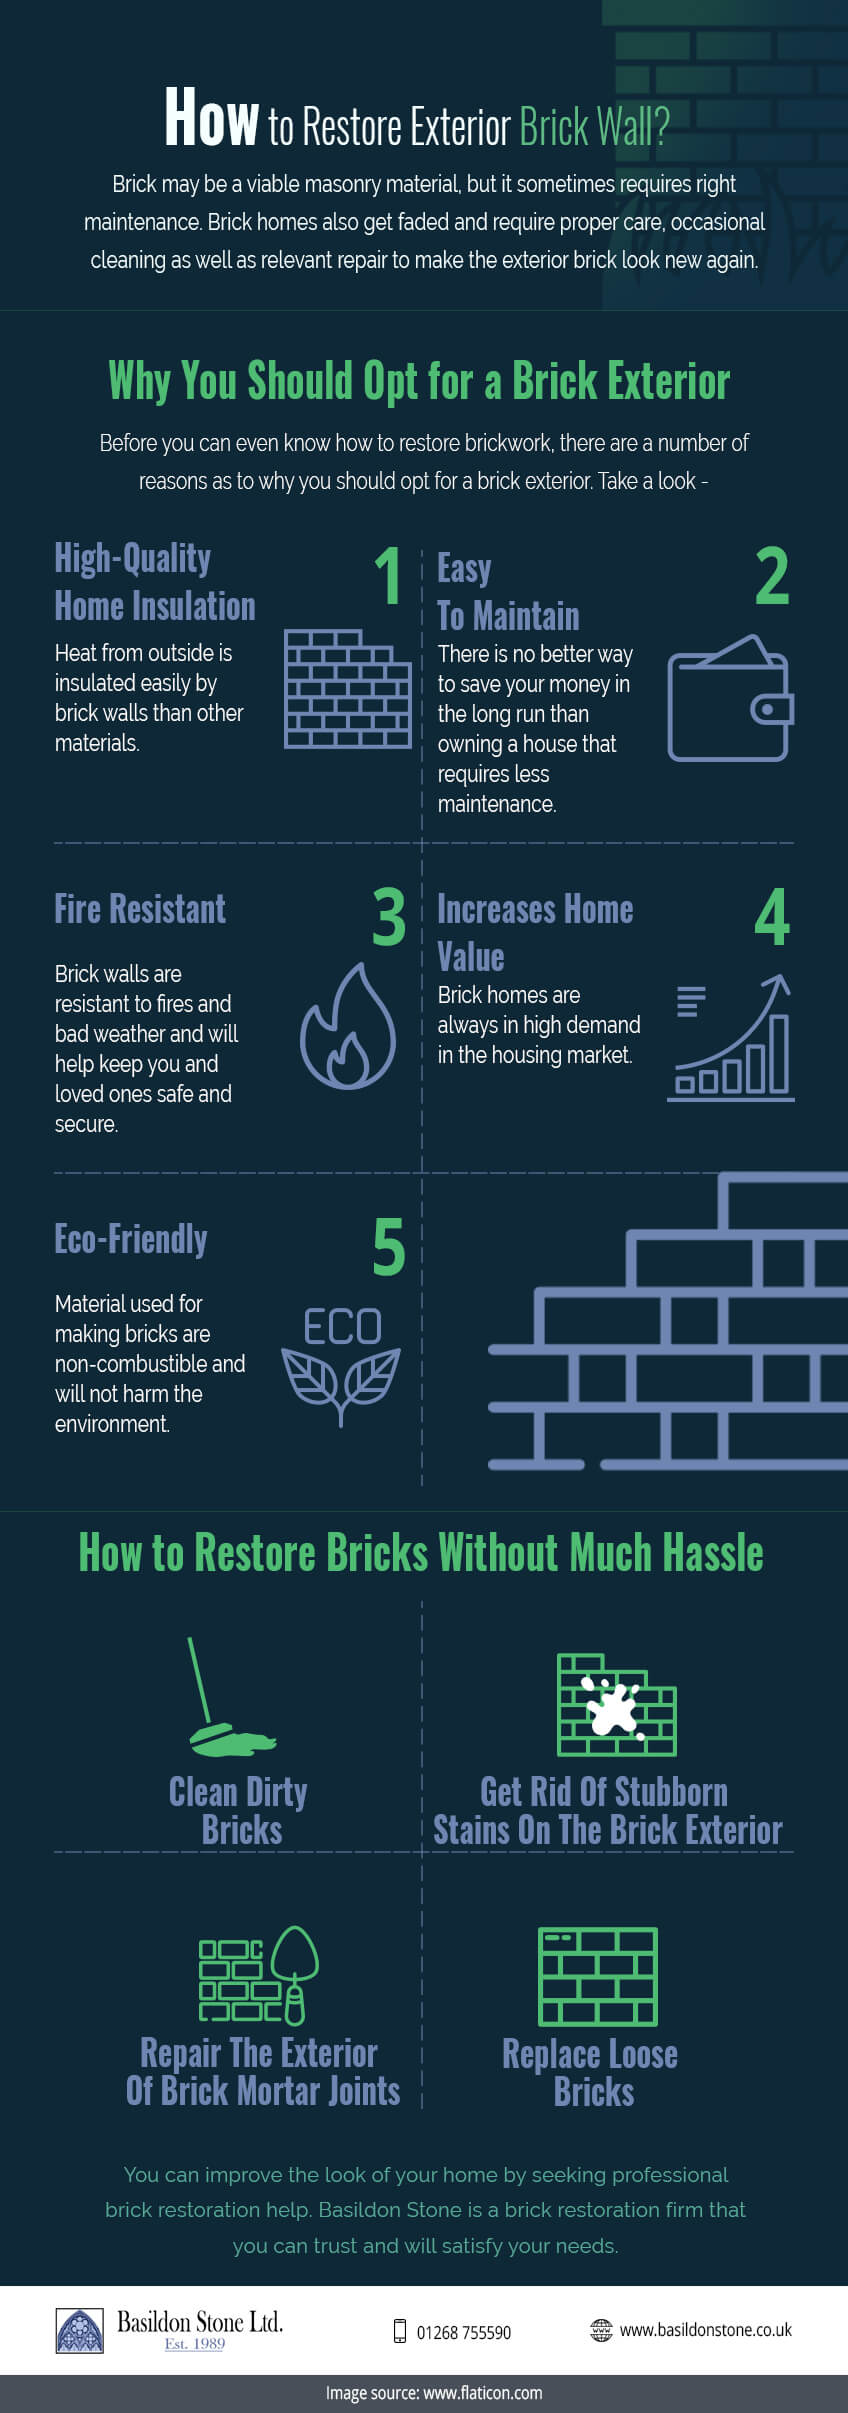 how to restore exterior brick wall